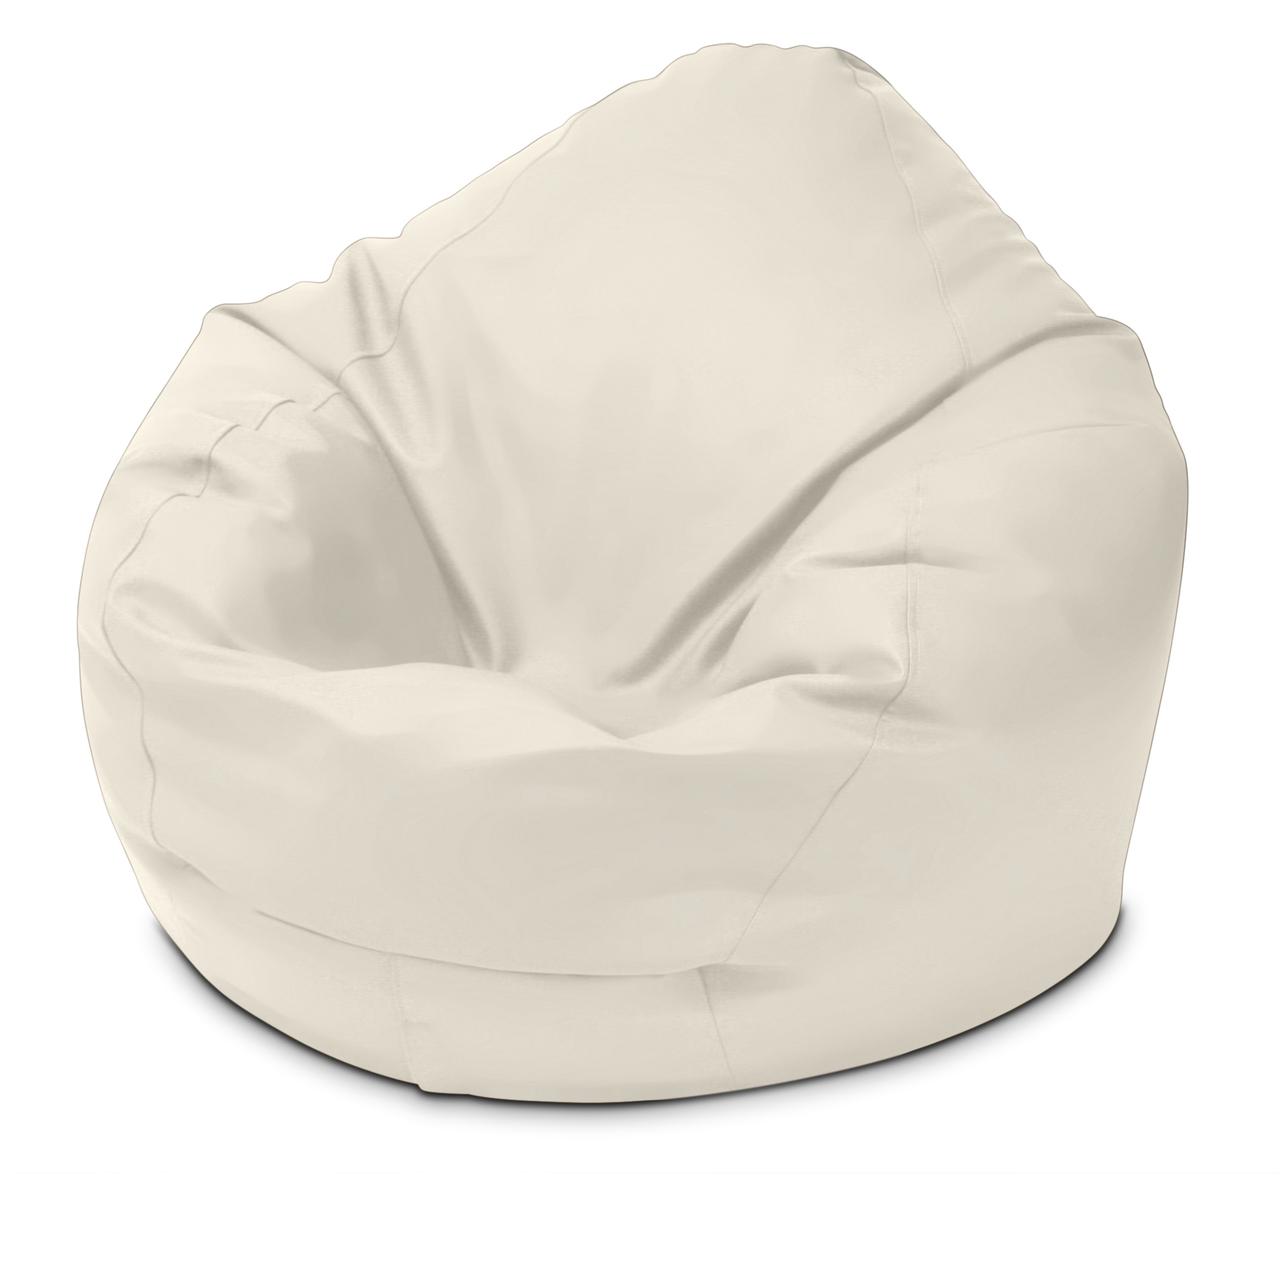 Classic King Size Bean Bag in marshmallow